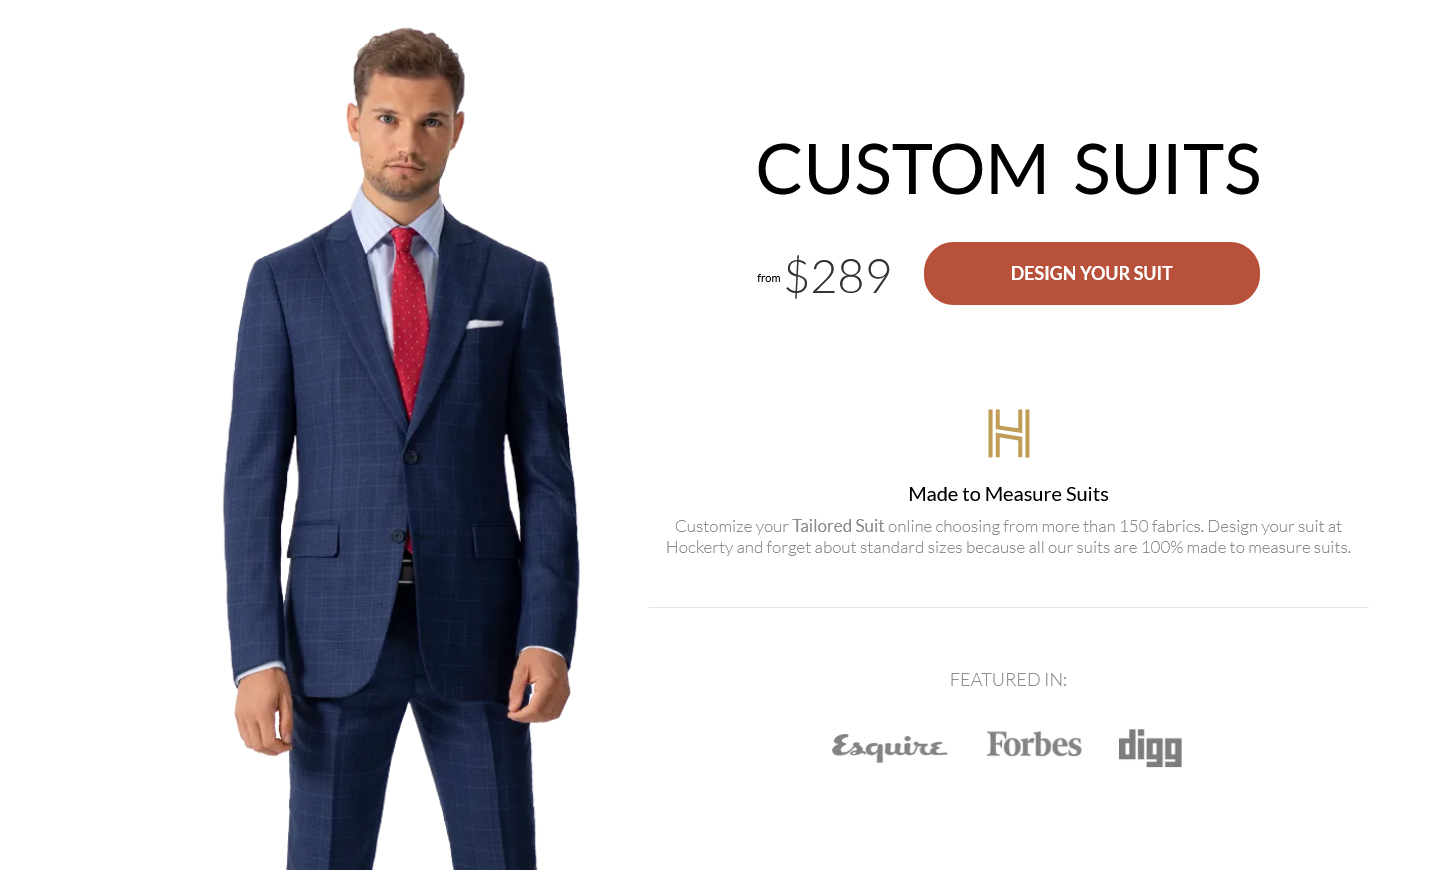 Hockerty suits - 3D designer and online ordering